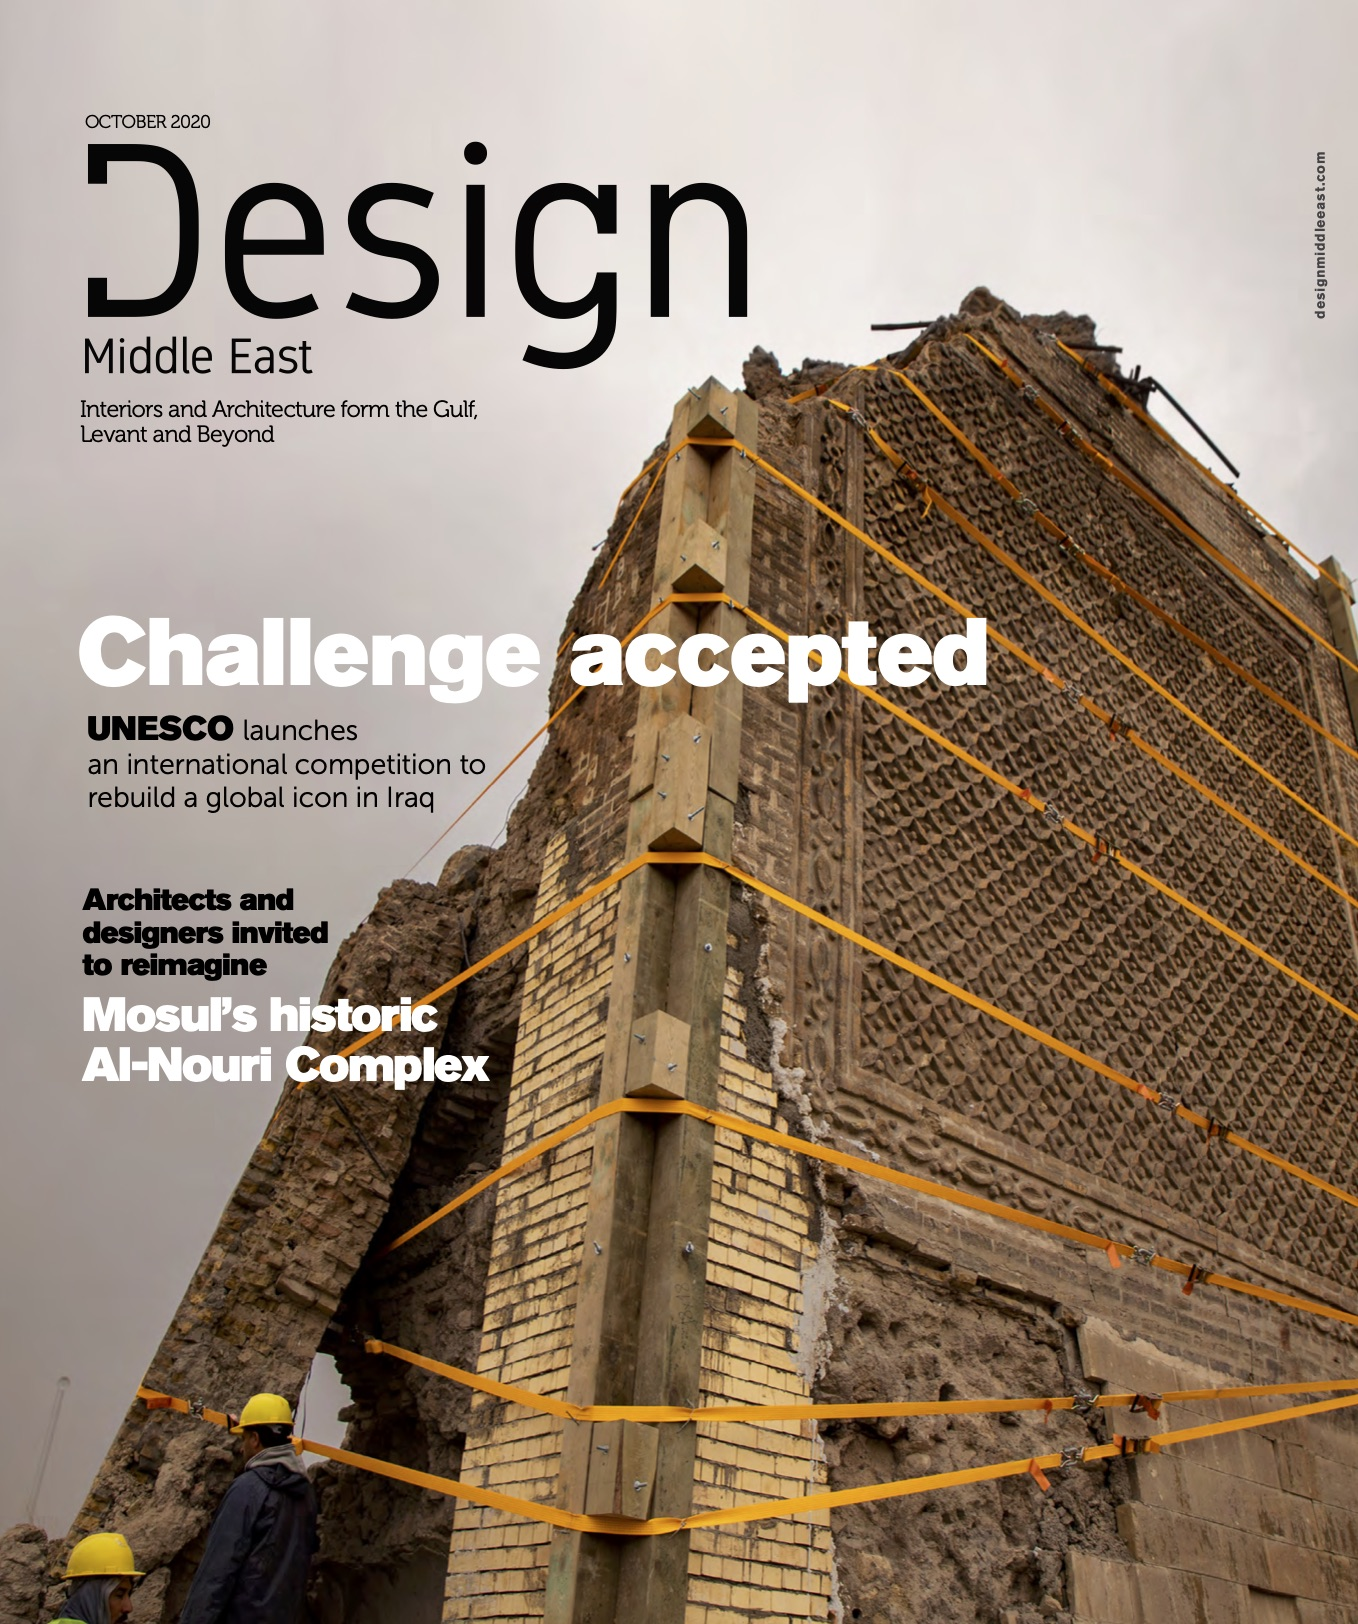 https://www.cbnme.com/magazines/design-me-october-2020/